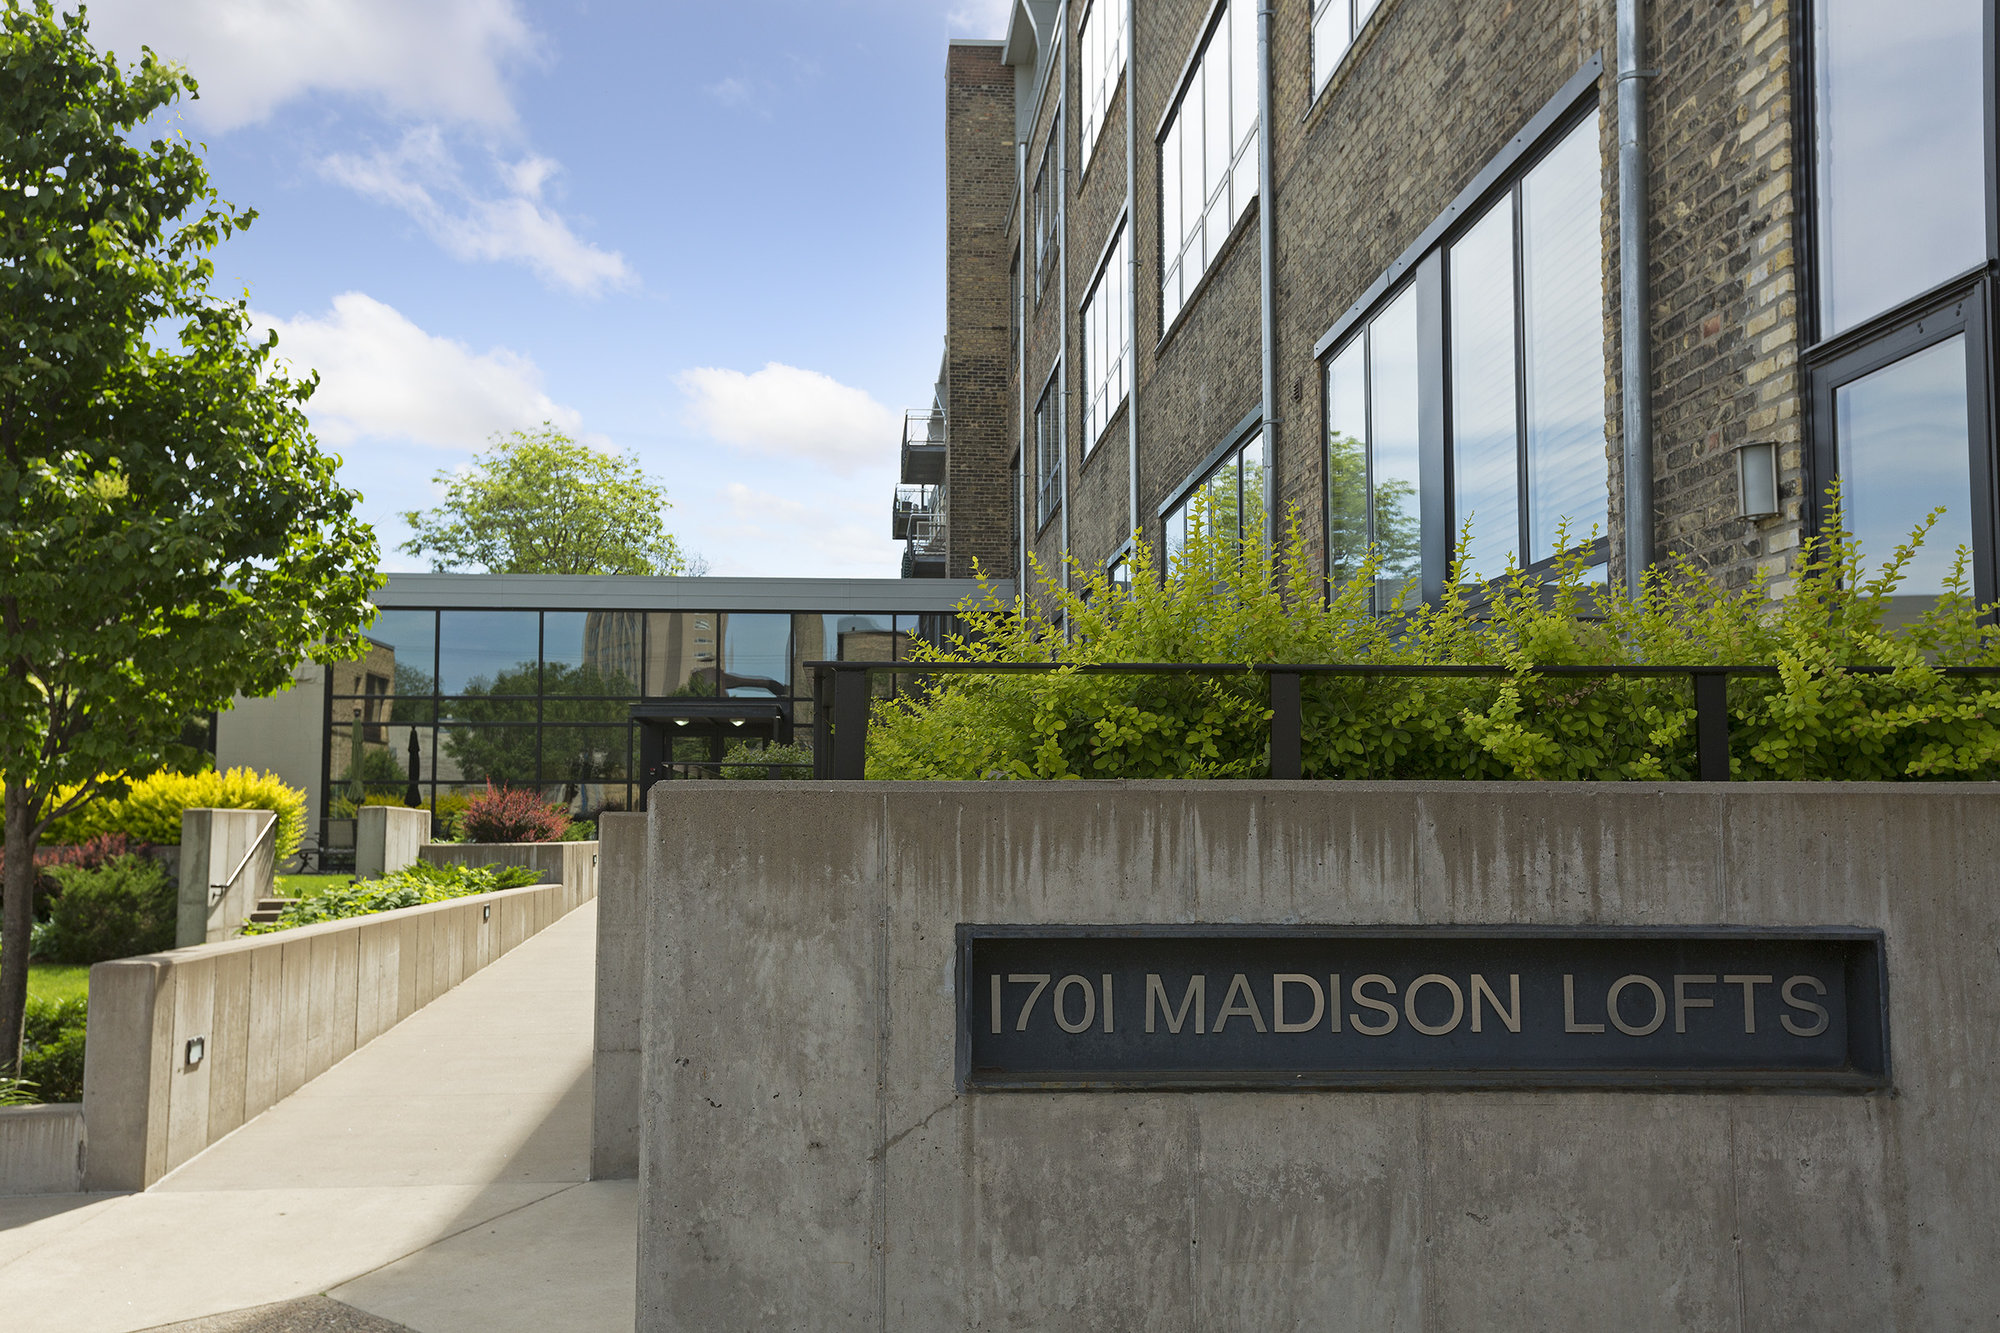 Madison Lofts Minneapolis Condos for Sale